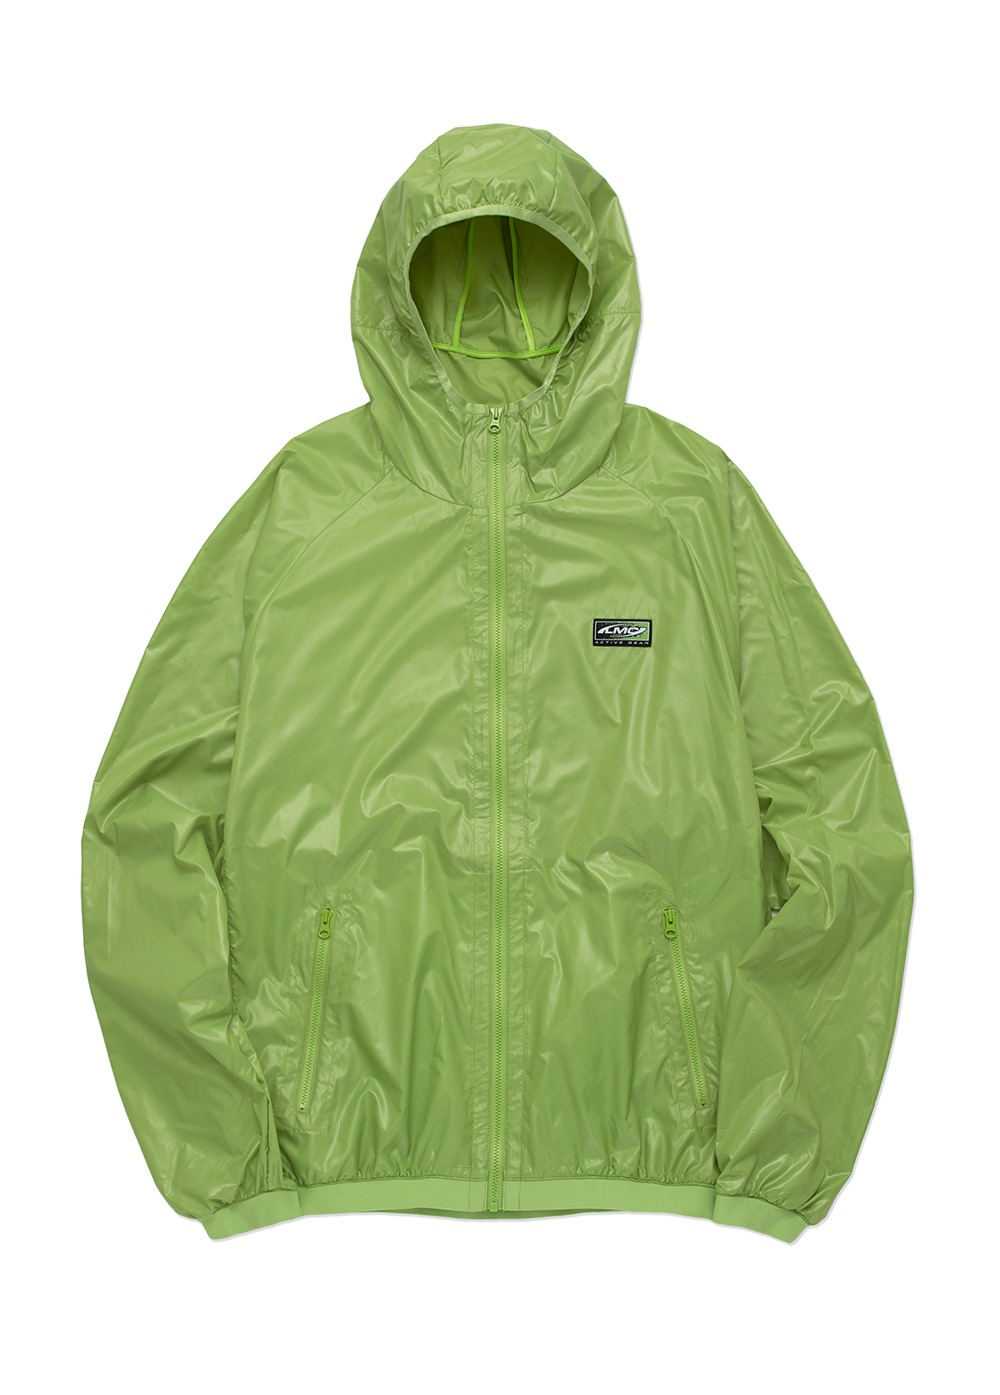 LMC GEAR PACKABLE LIGHTWEIGHT JACKET green